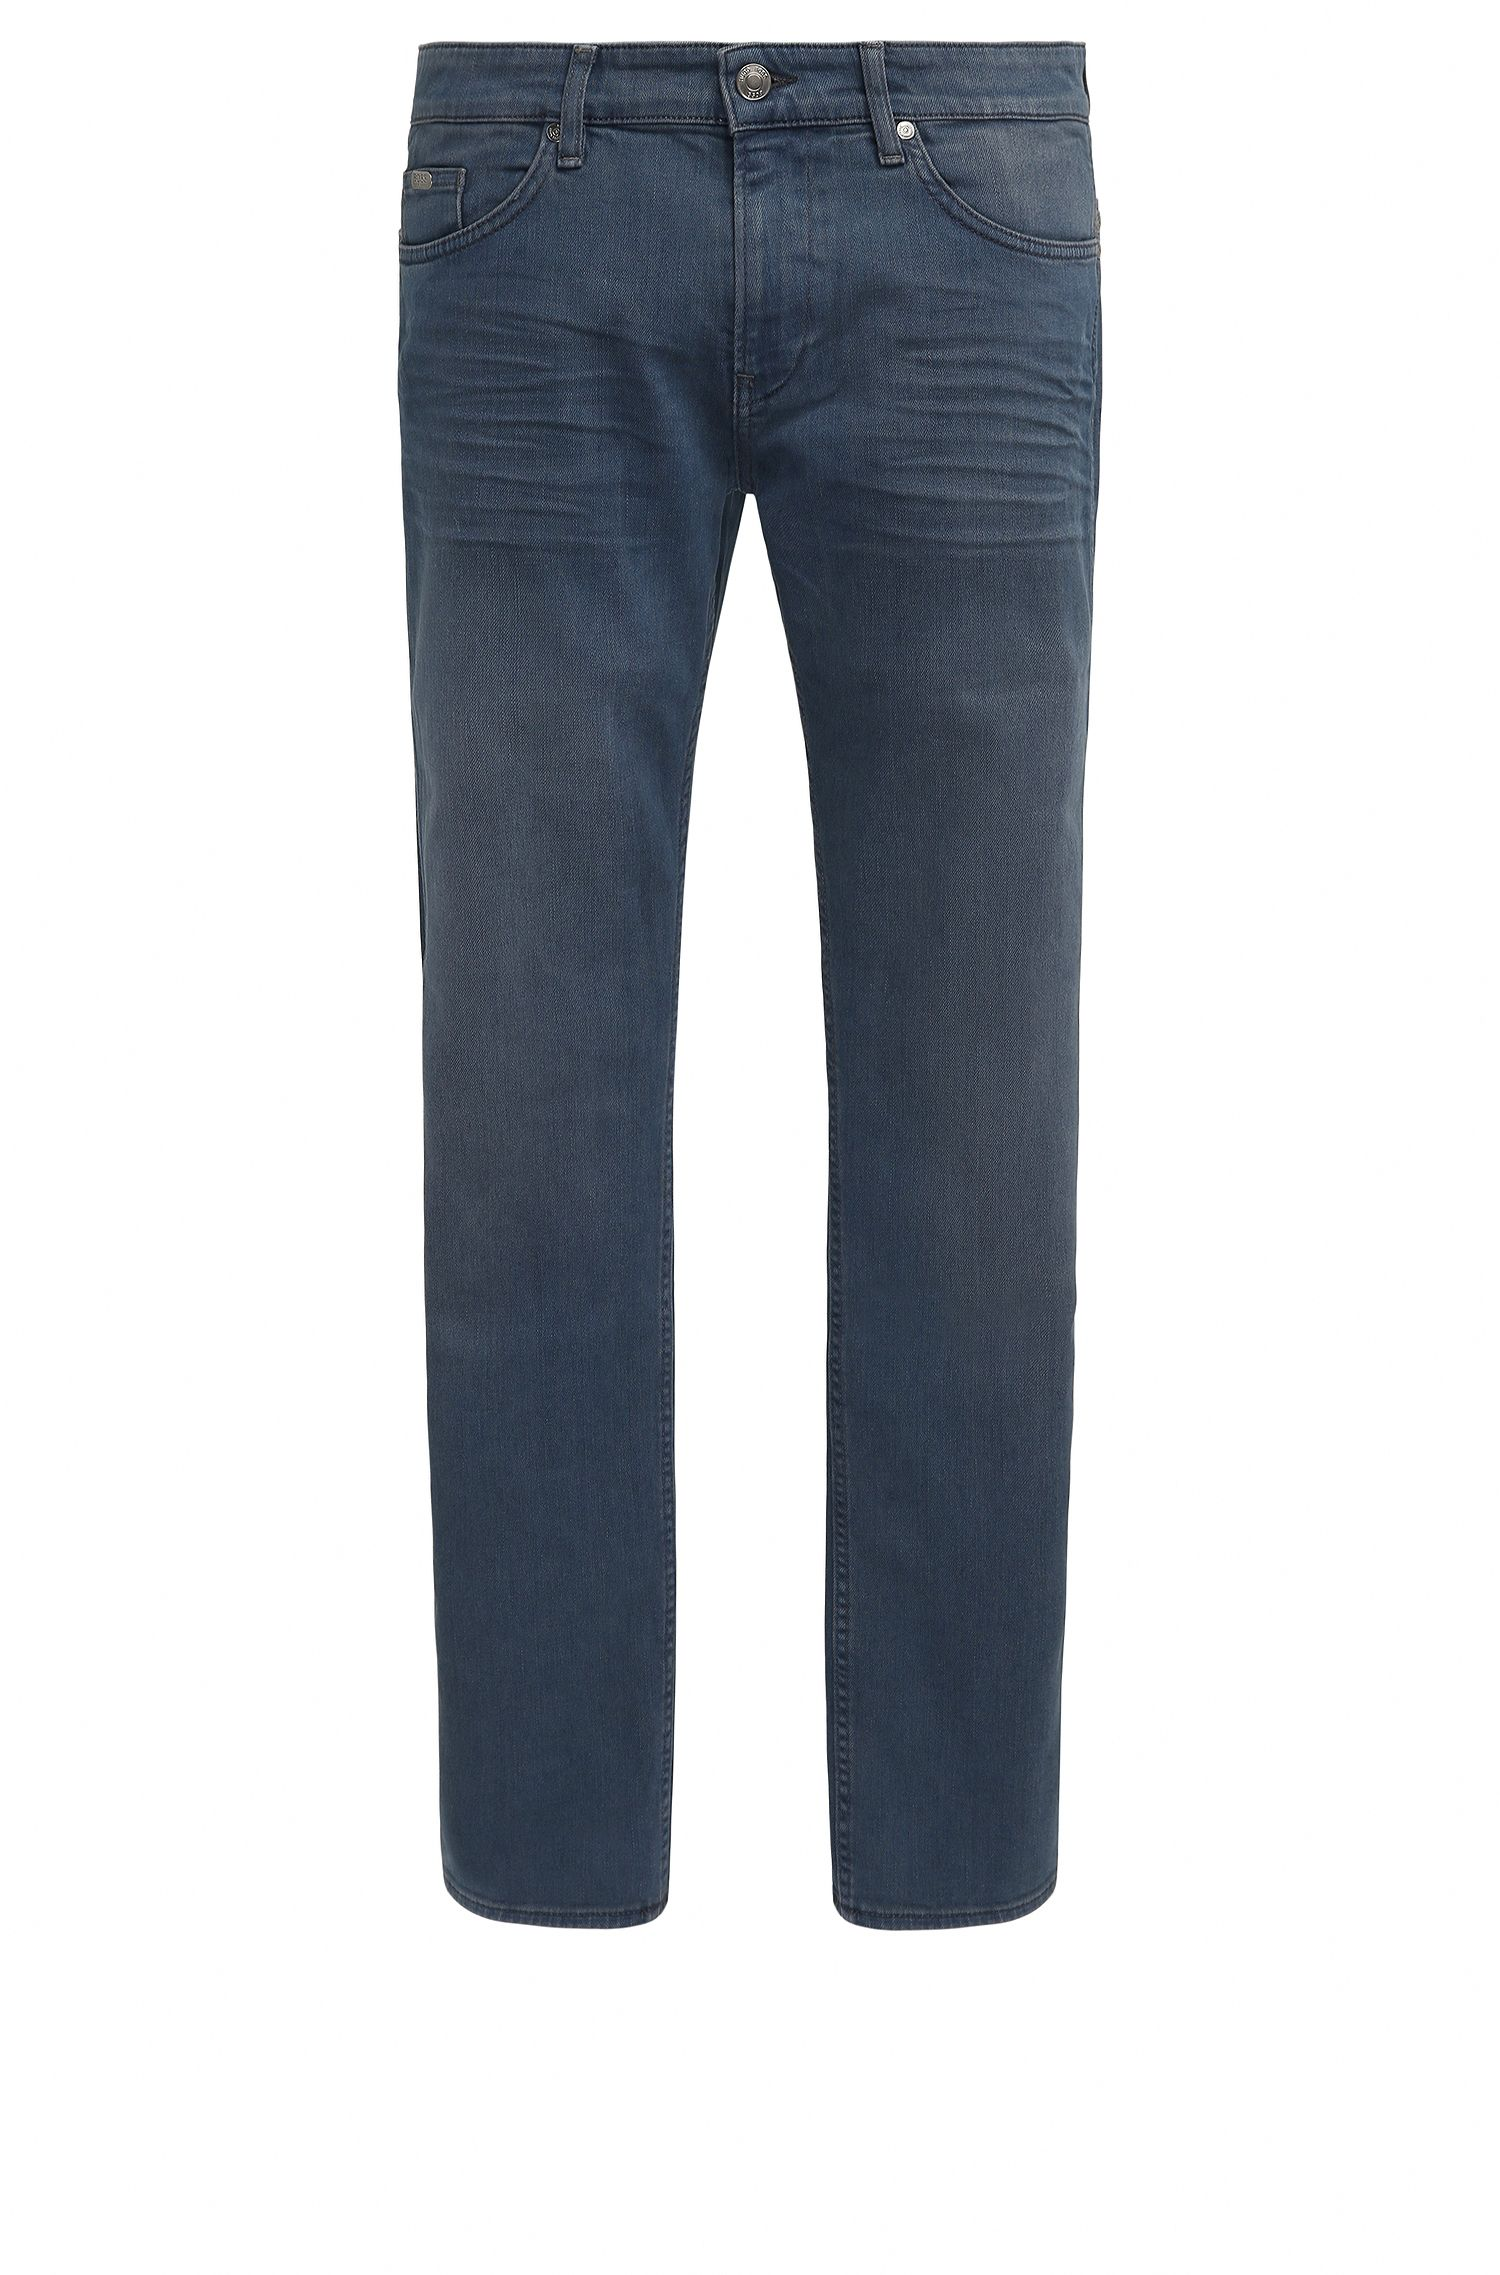 Slim-fit jeans in over-dyed denim